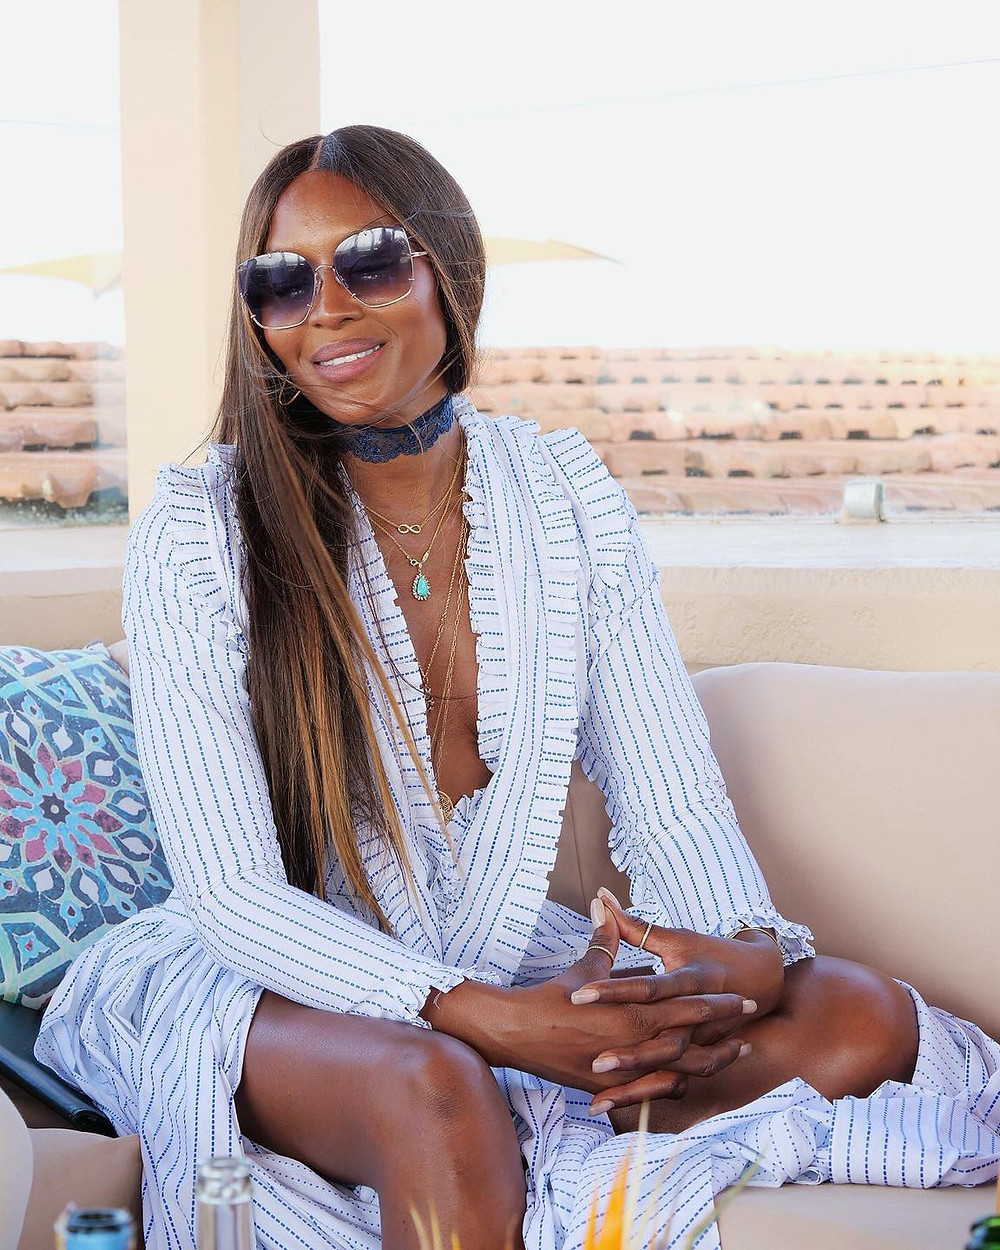 Supermodel Naomi Campbell in Kenya sitting and smiling wearing sunglasses